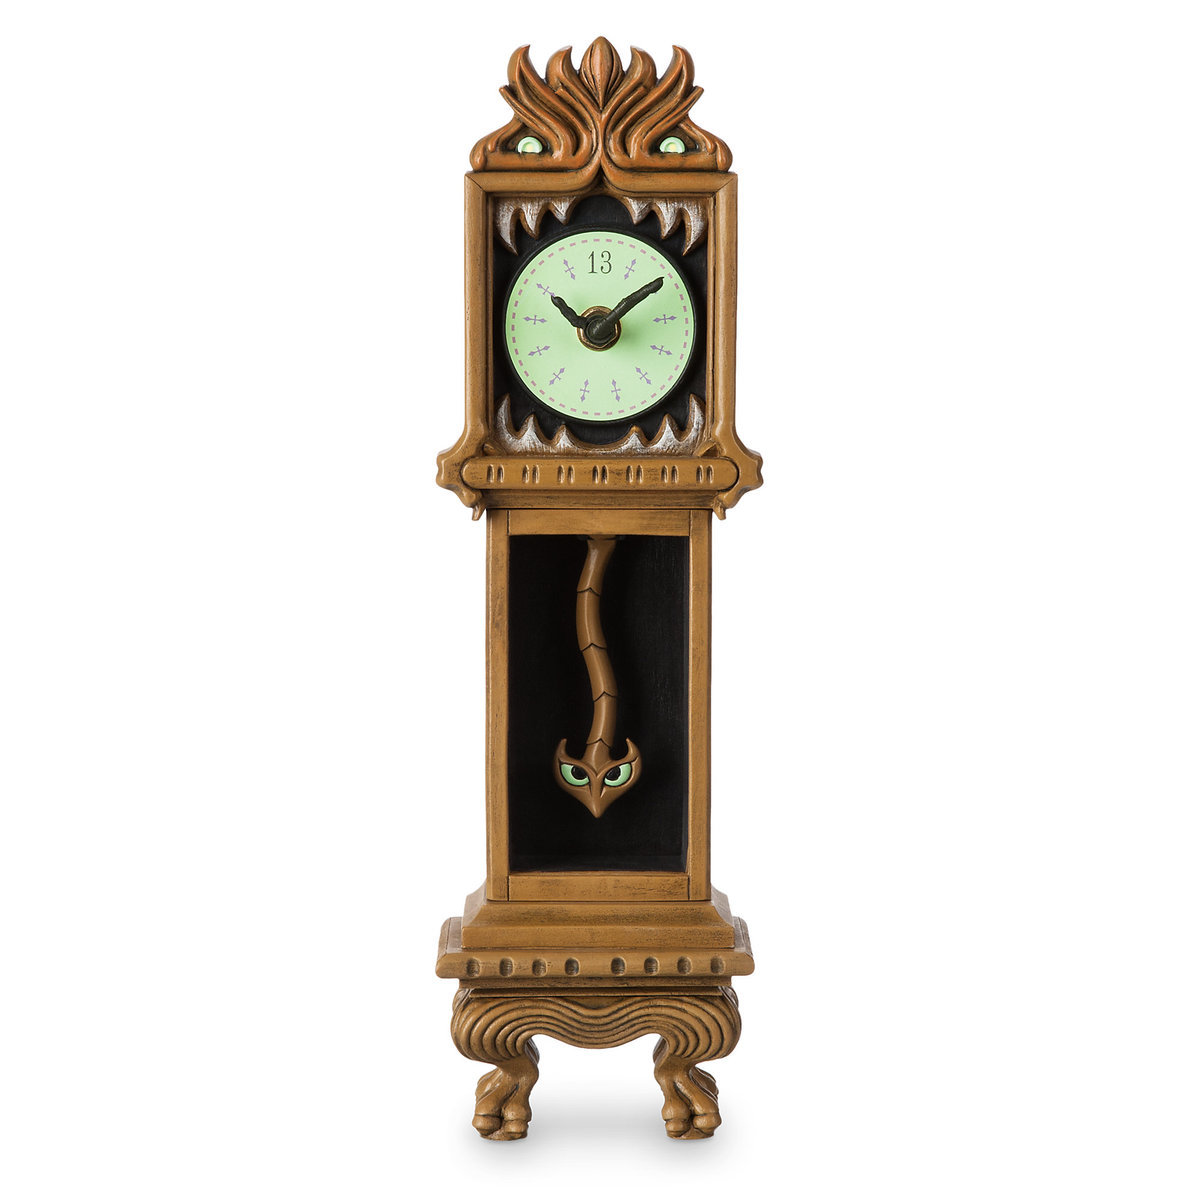 Your wdw store disney clock the haunted mansion clock figure disney clock the haunted mansion clock figure working clock amipublicfo Choice Image